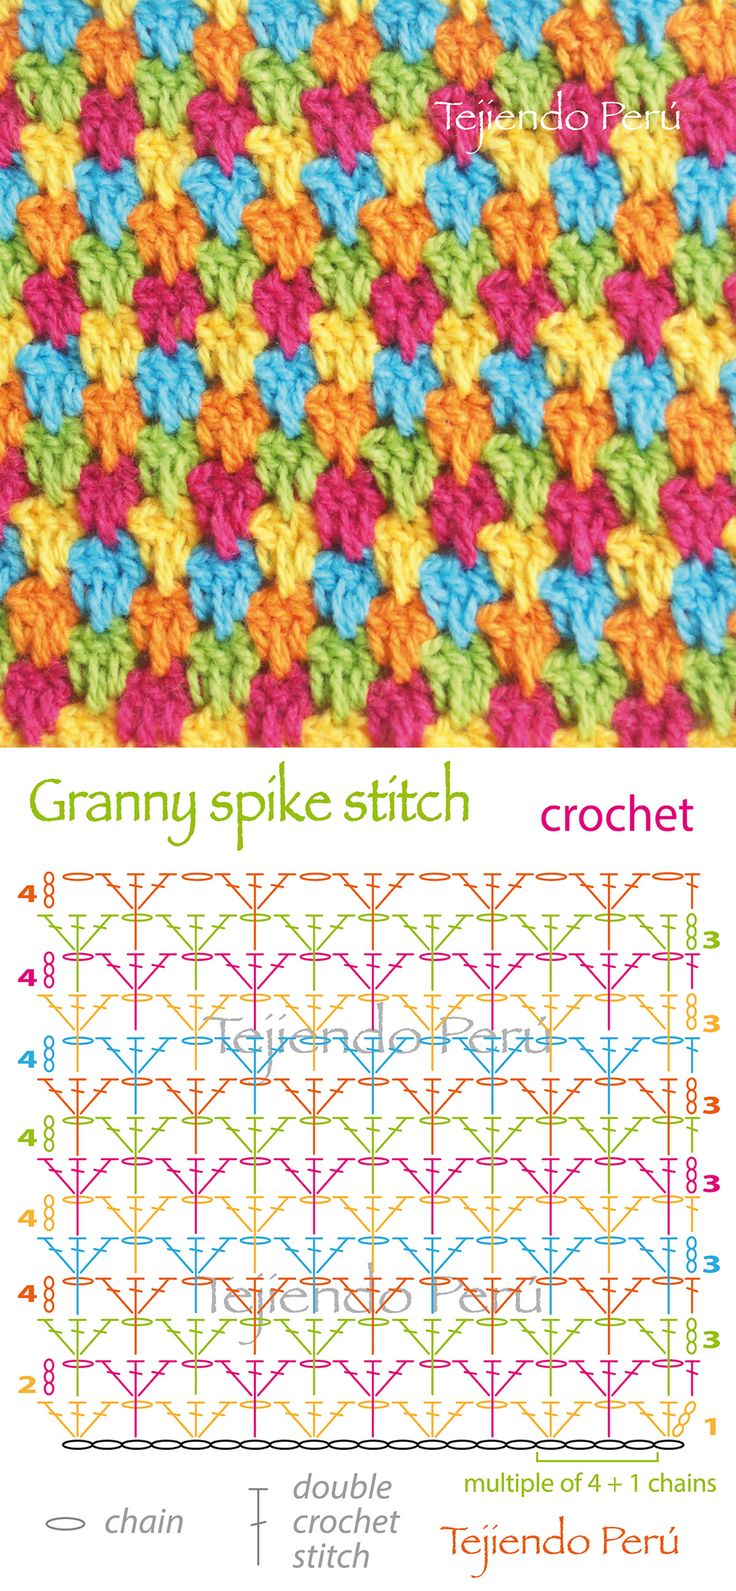 Crochet: granny spike stitch diagram!